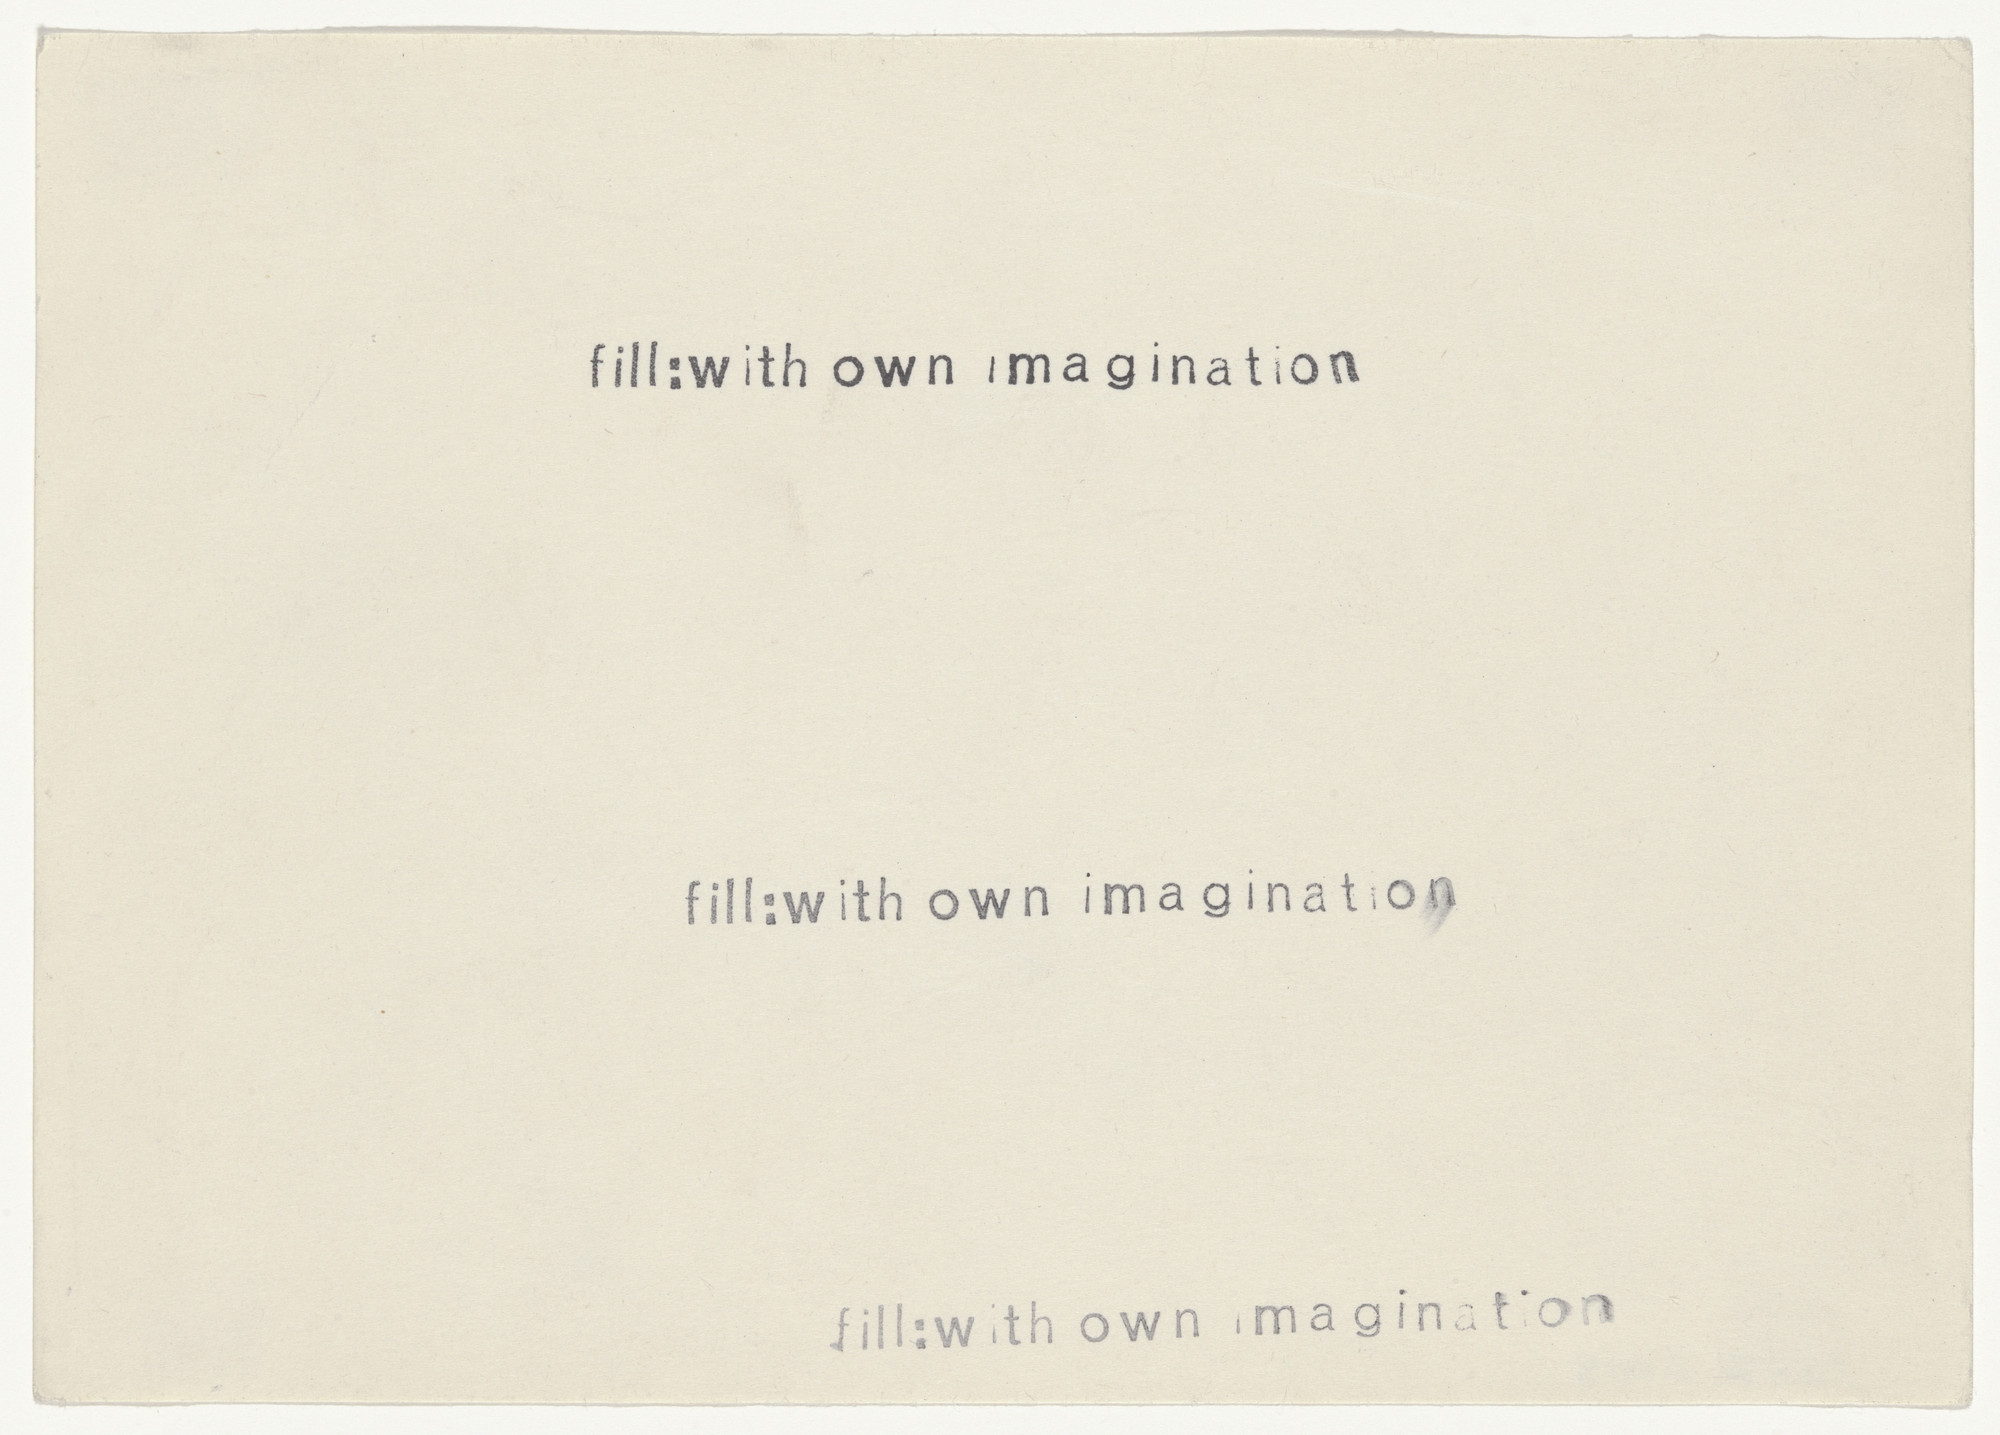 Arthur Köpcke. Reading Work Piece No. 10: fill with own imagination. 1965